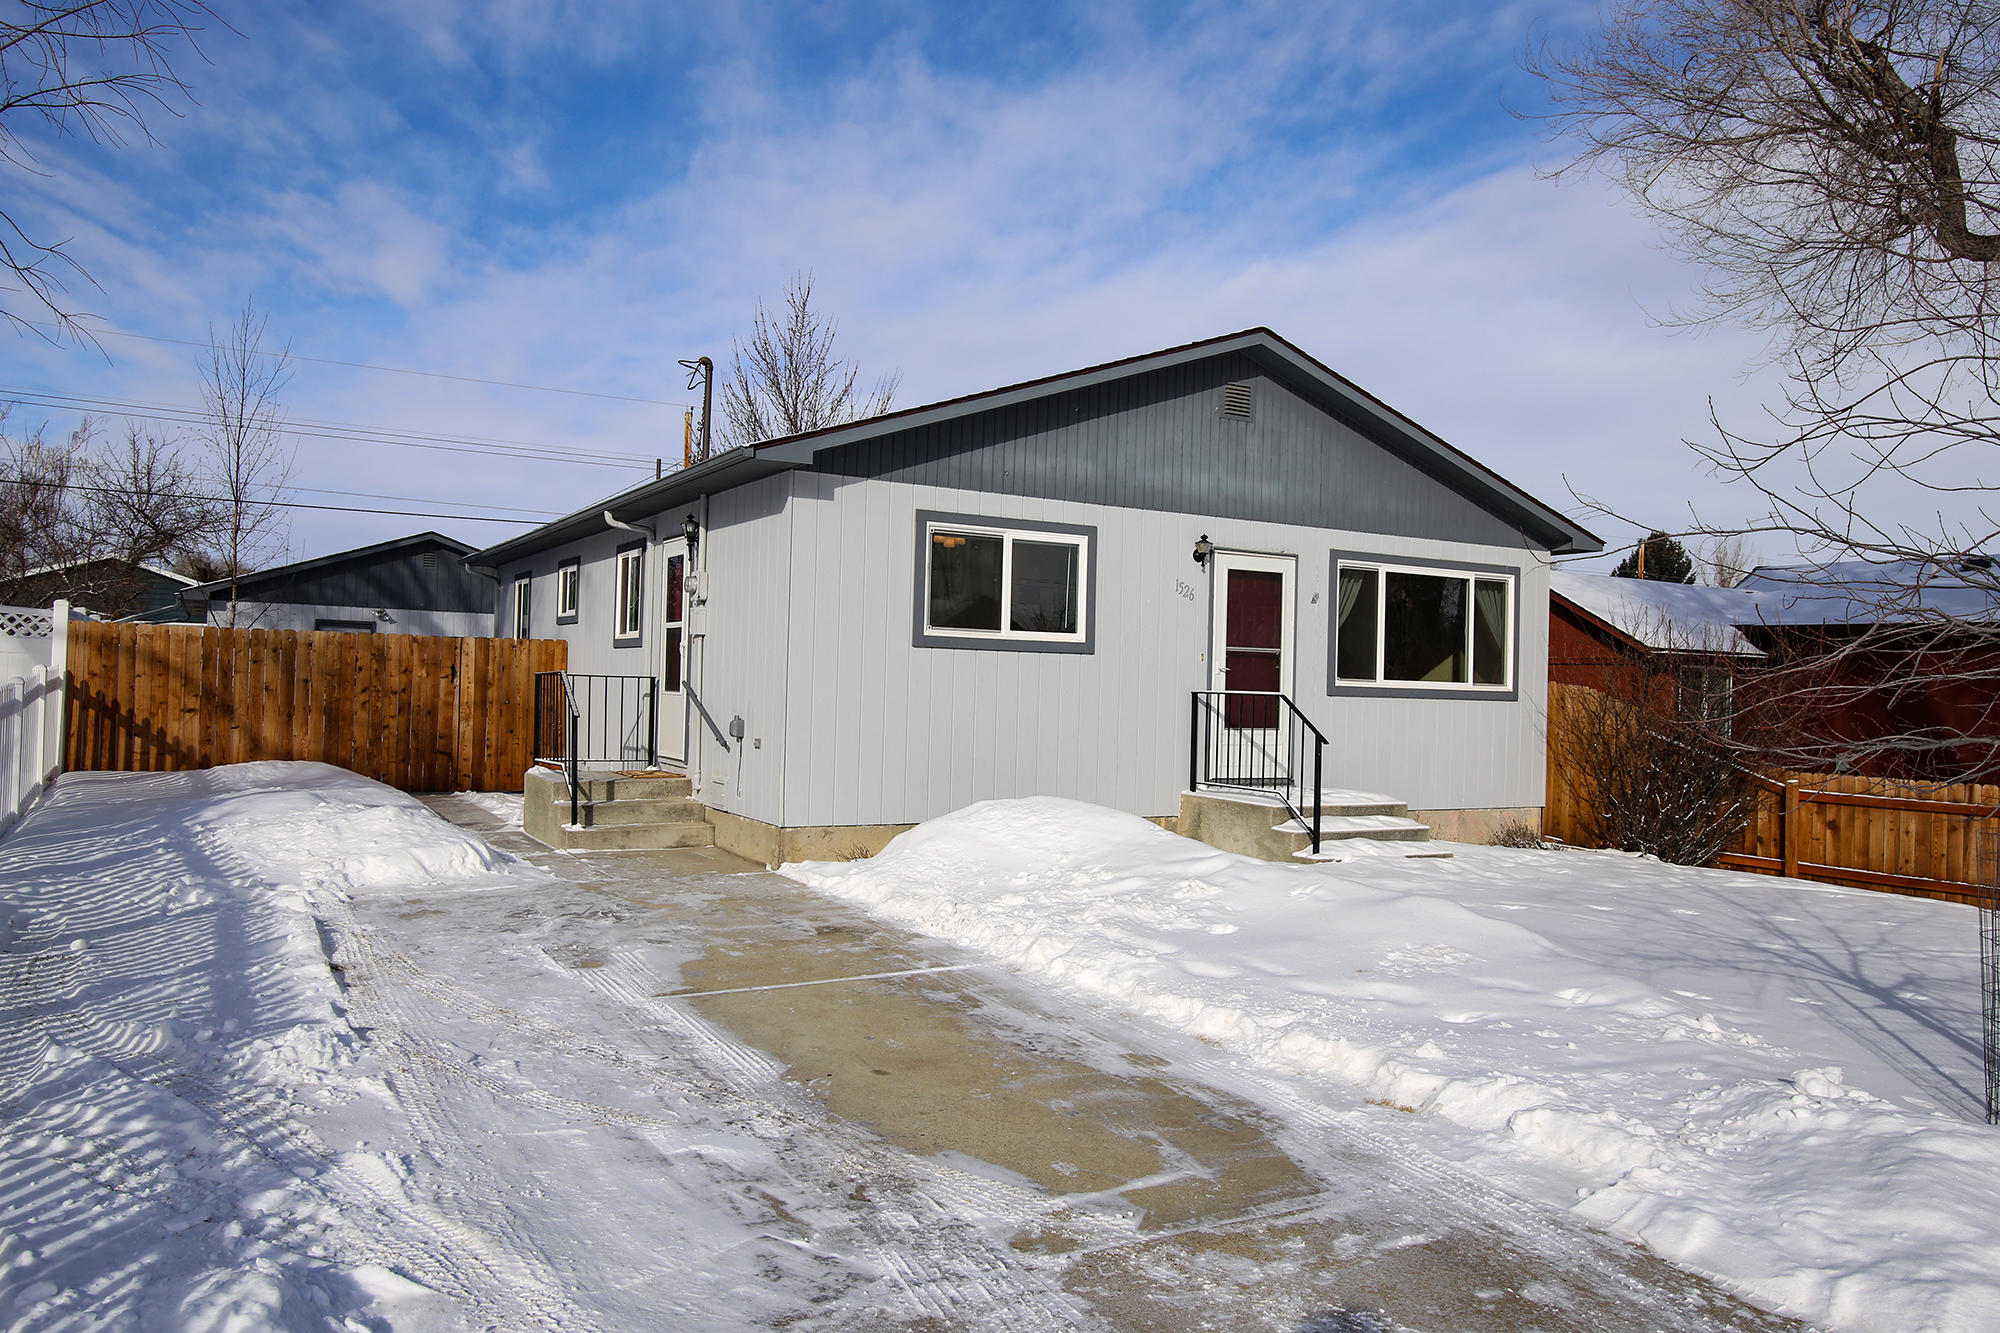 1526 S Thurmond Avenue, Sheridan, Wyoming 82801, 3 Bedrooms Bedrooms, ,1.5 BathroomsBathrooms,Residential,For Sale,Thurmond,19-169